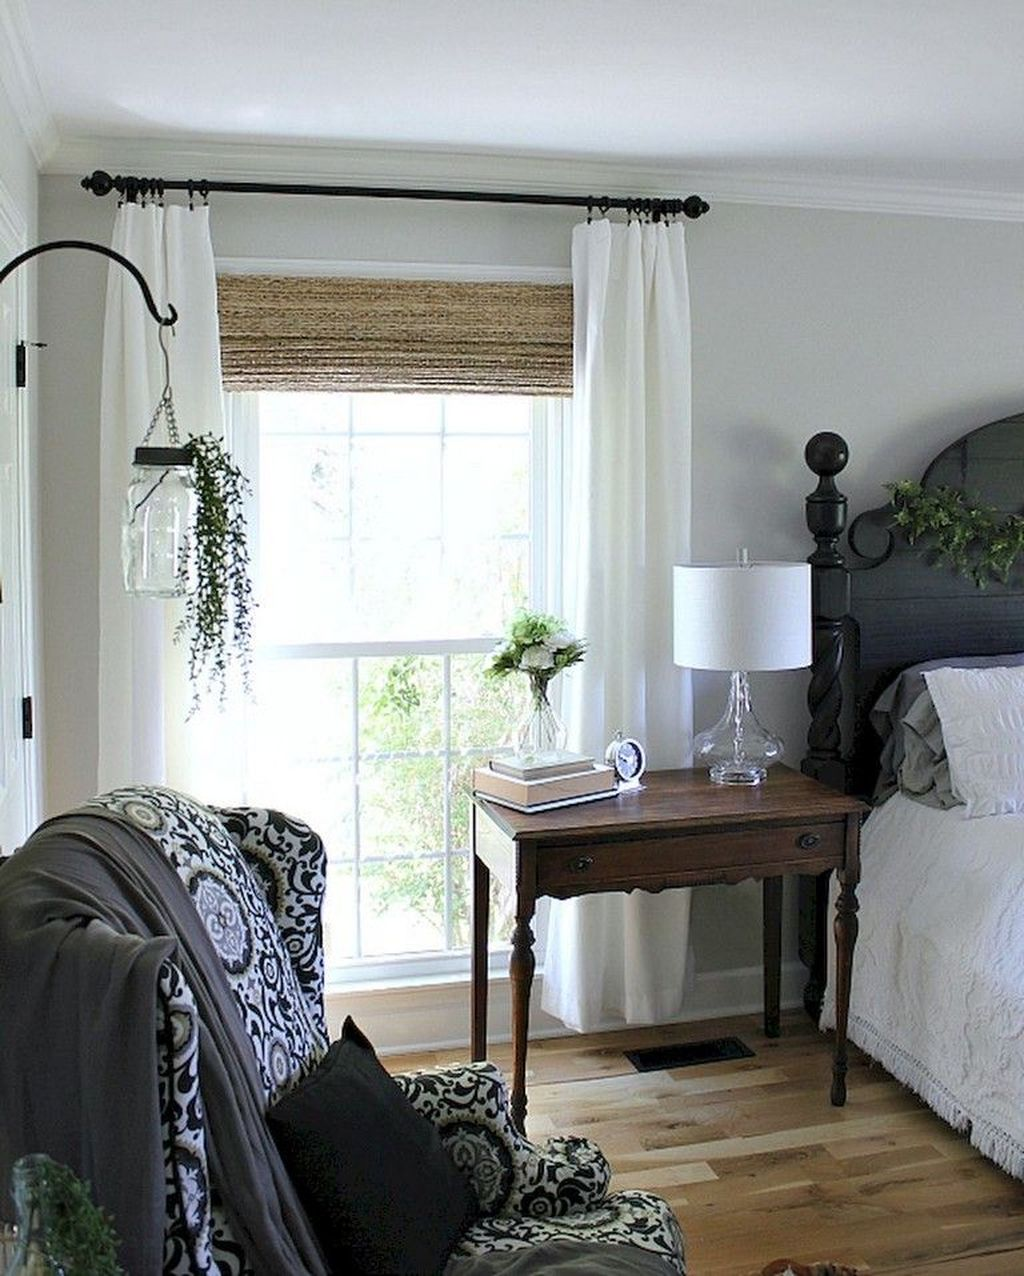 The Best Small Master Bedroom Design Ideas WIth Farmhouse Style 12